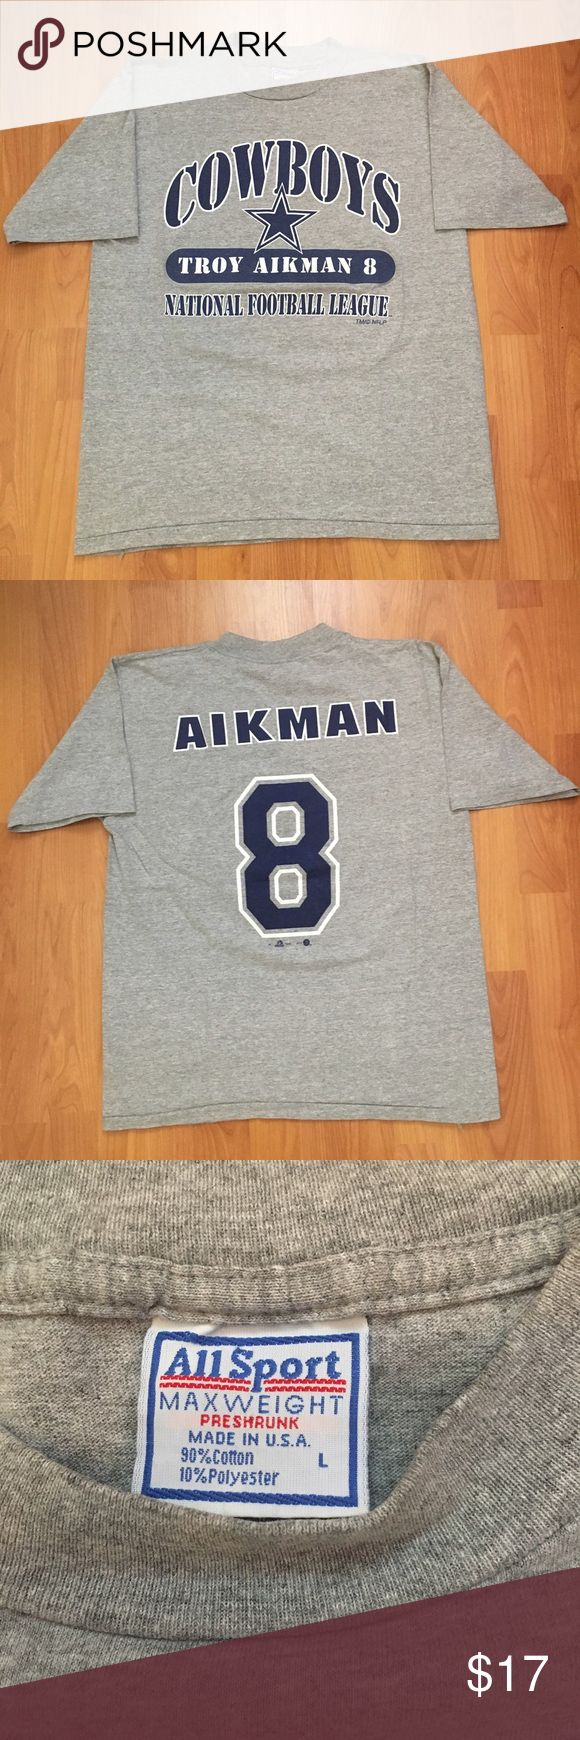 Vintage, 90s Dallas Cowboys Troy Aikman Tshirt Vintage, 90s Dallas Cowboys Troy Aikman National Football League Tee. In great condition! Shirts Tees - Short Sleeve